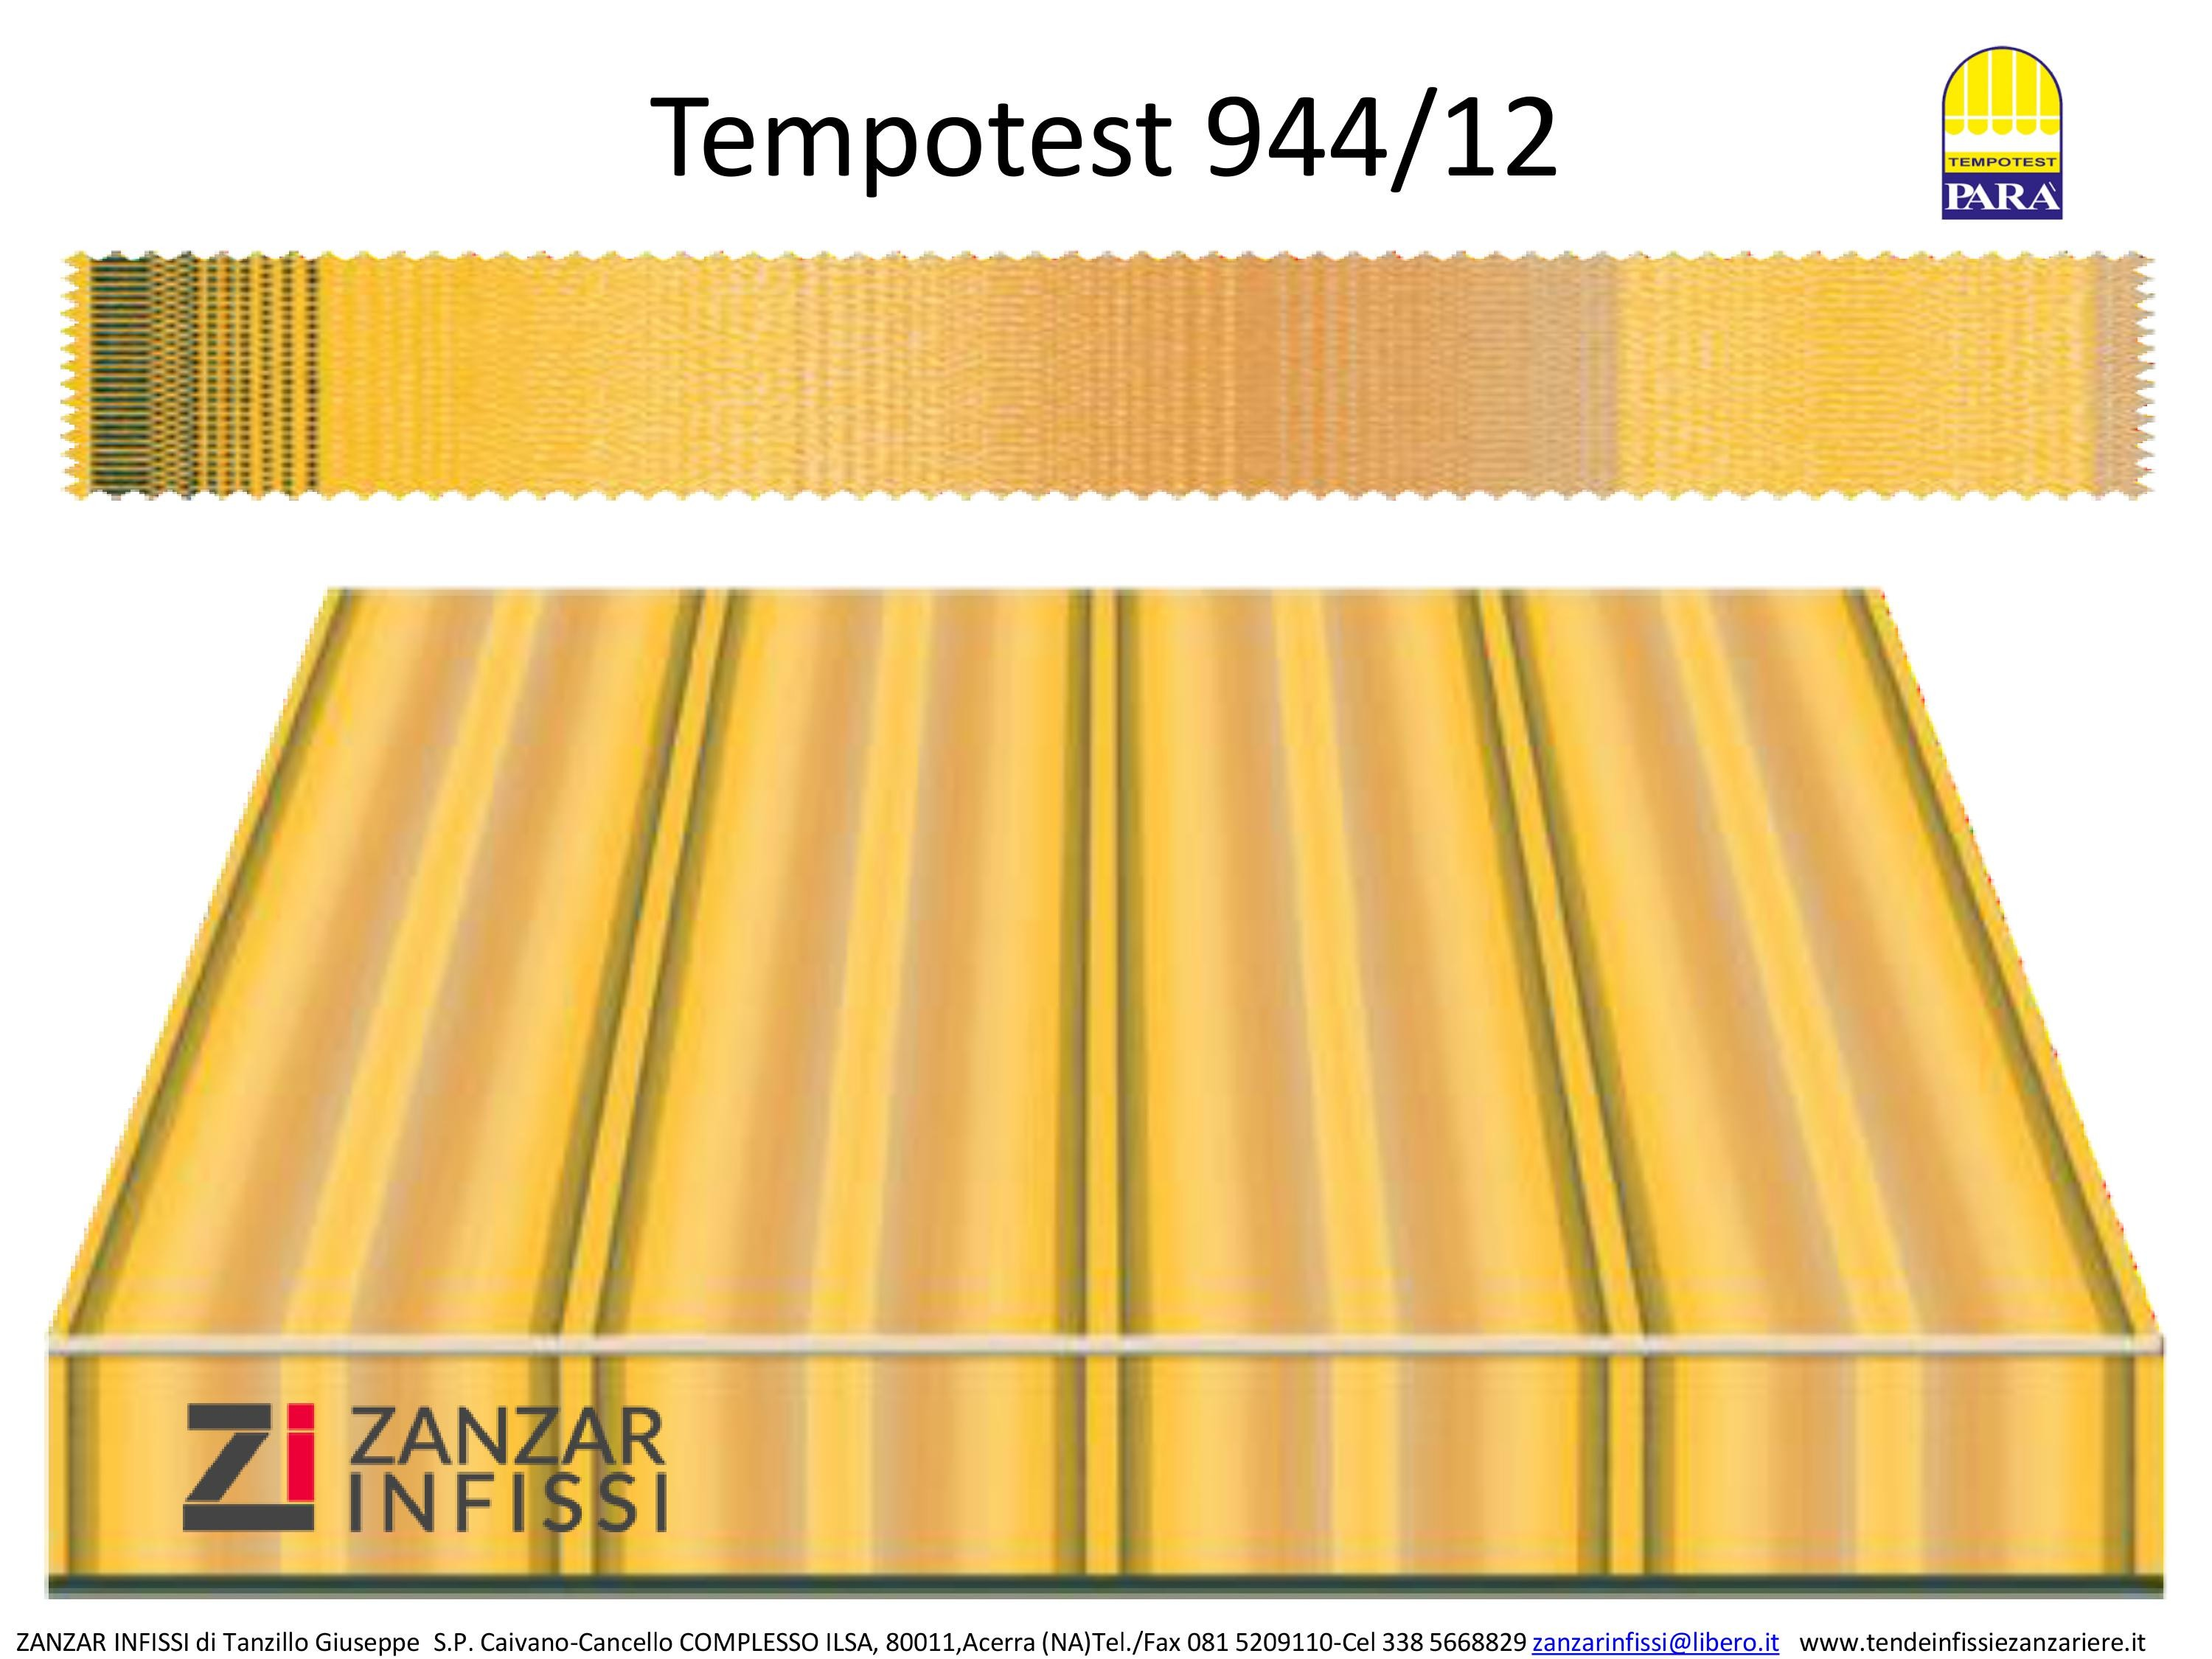 Tempotest 944/12